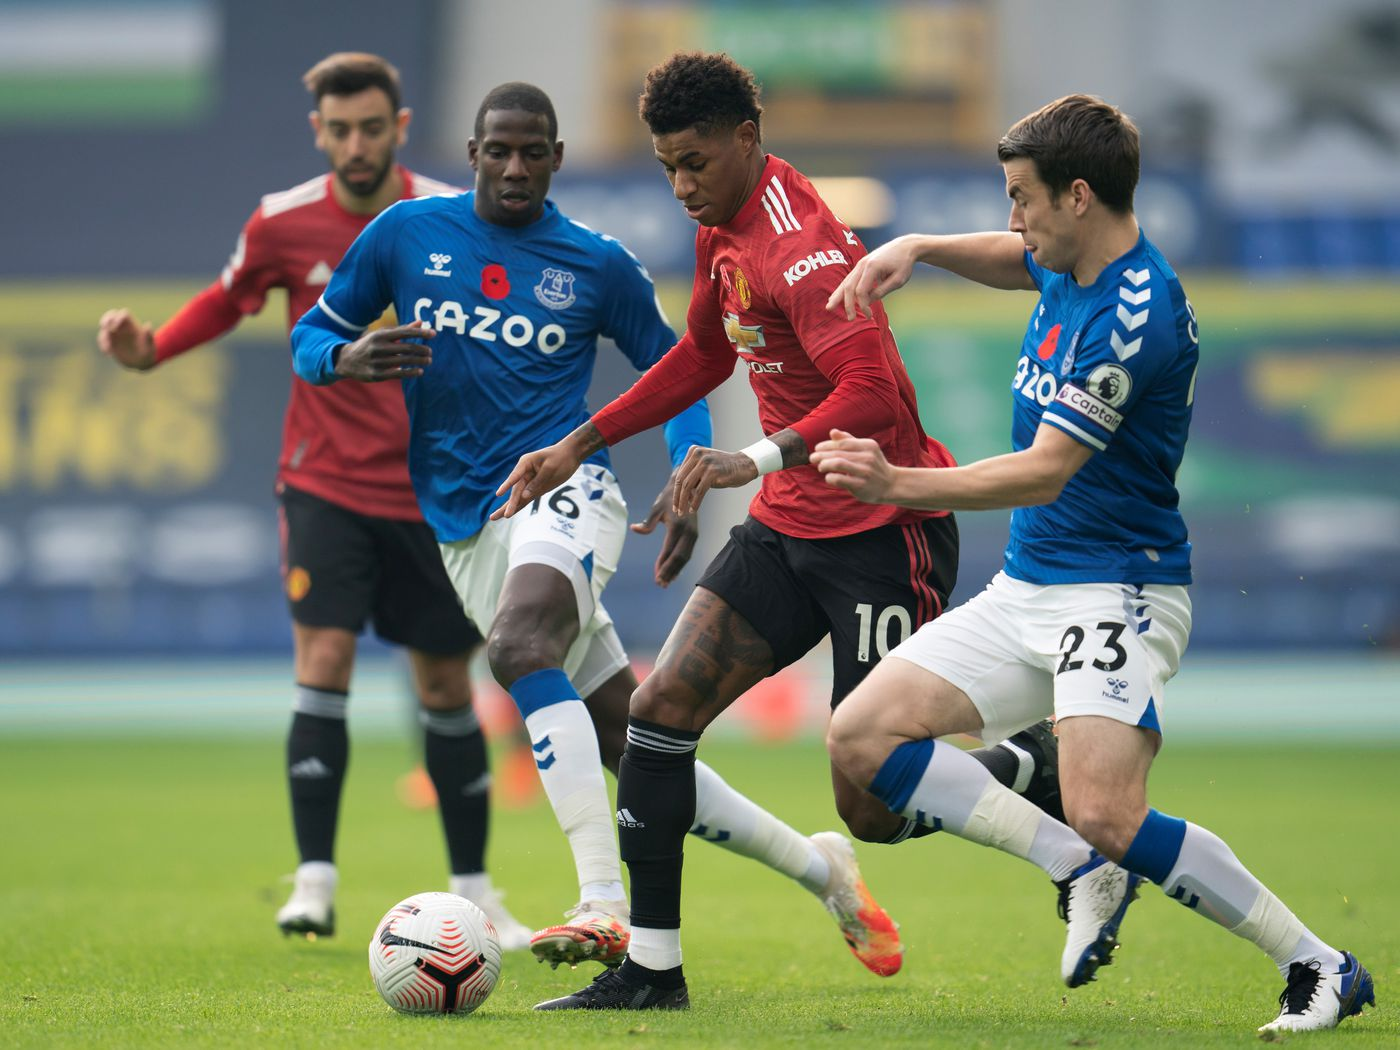 Everton Vs Manchester United Match Preview Can The Toffees Make The Last Four Royal Blue Mersey